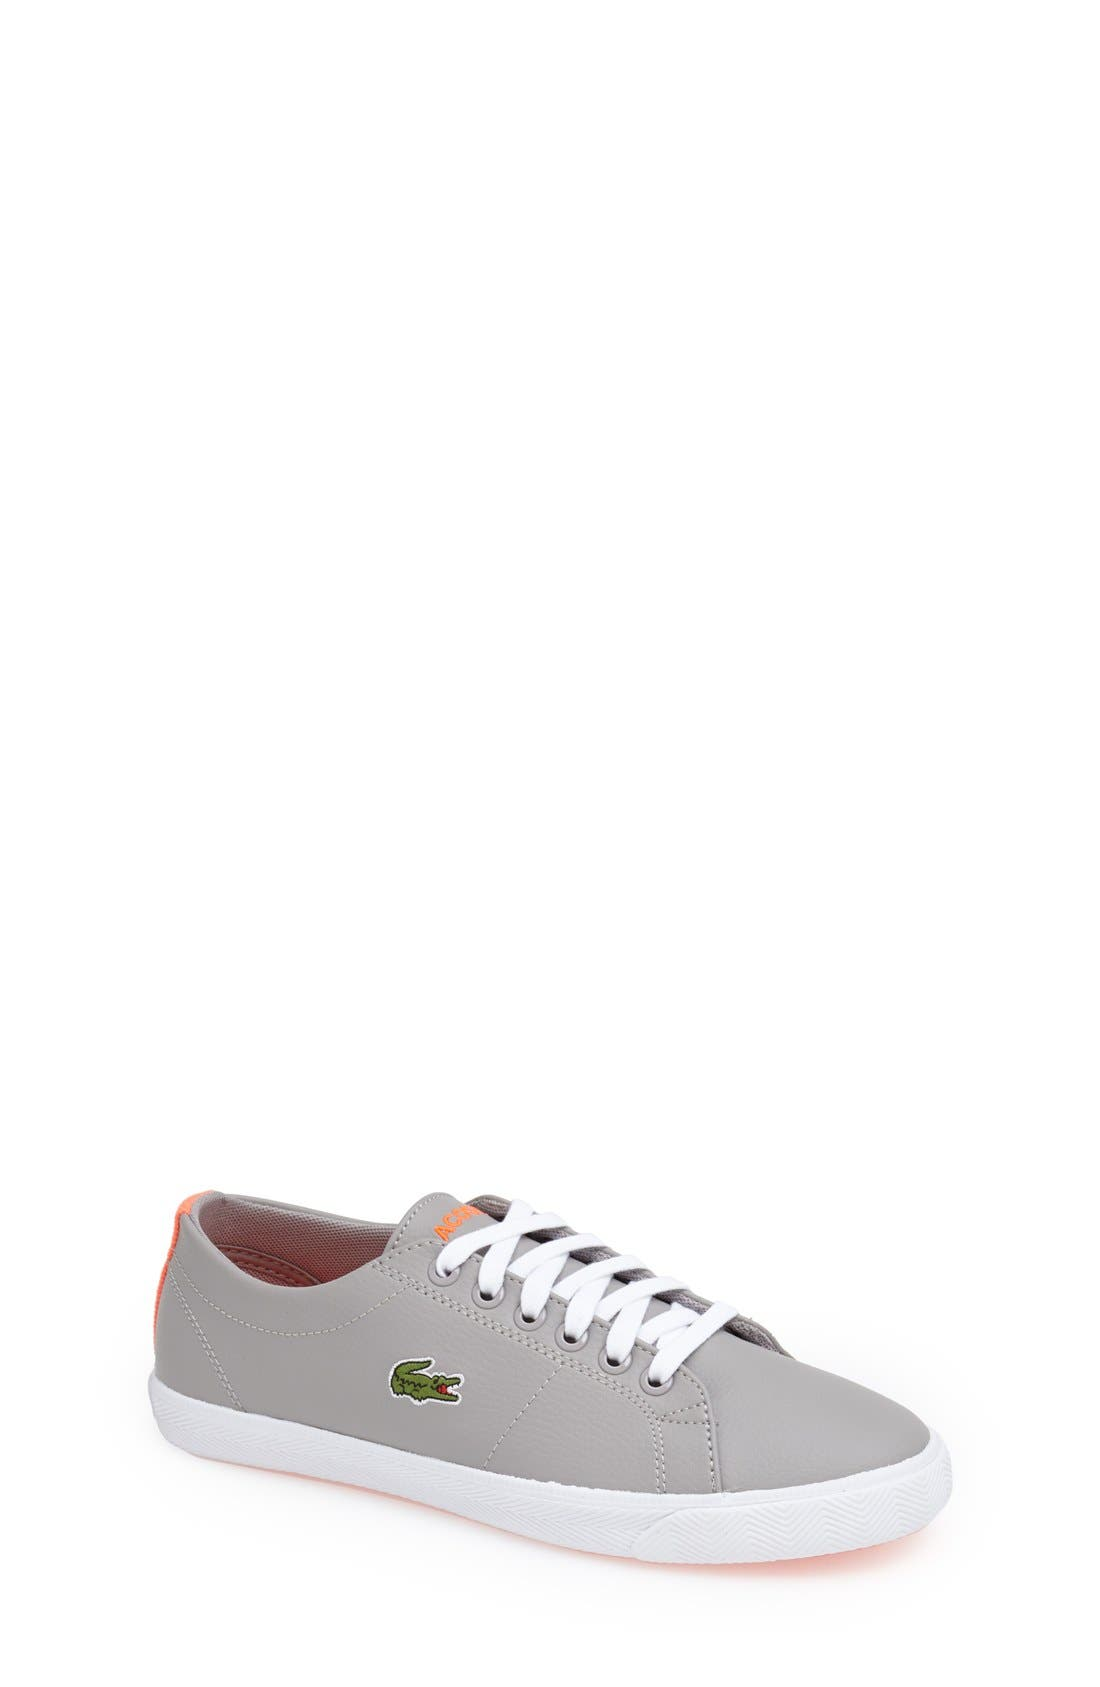 Alternate Image 1 Selected - Lacoste 'Marcel' Sneaker (Toddler, Little Kid & Big Kid)